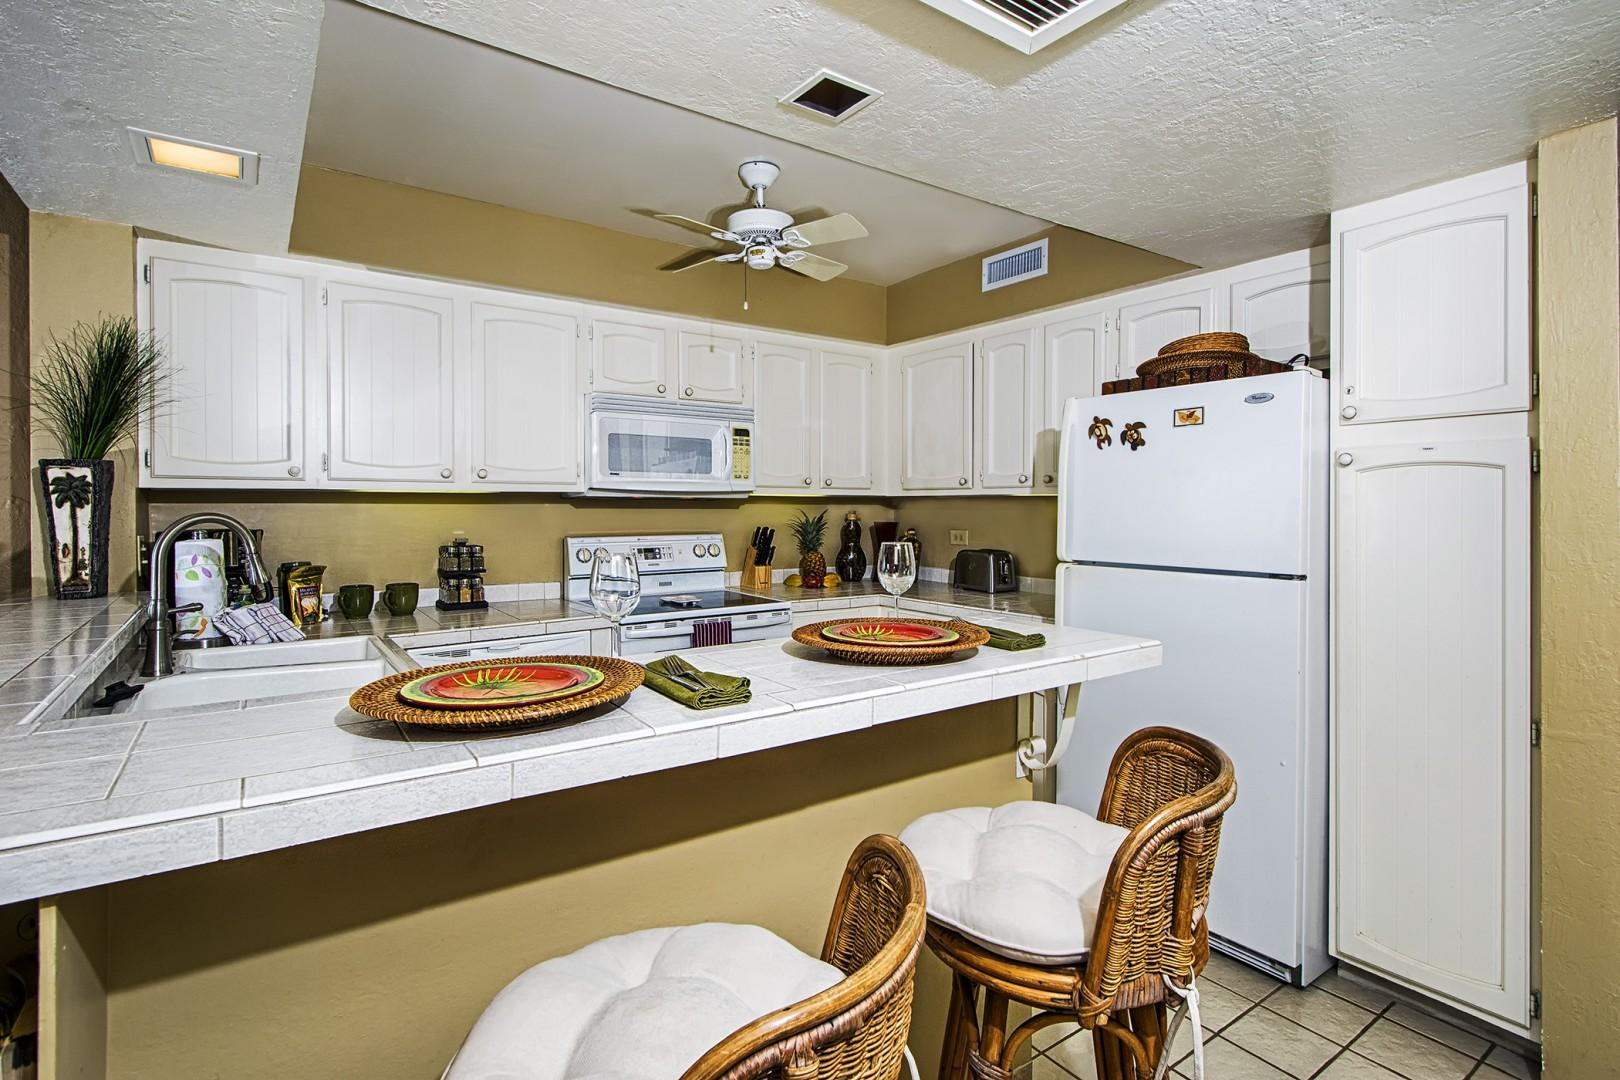 Fully equipped kitchen steps from the outdoor dining